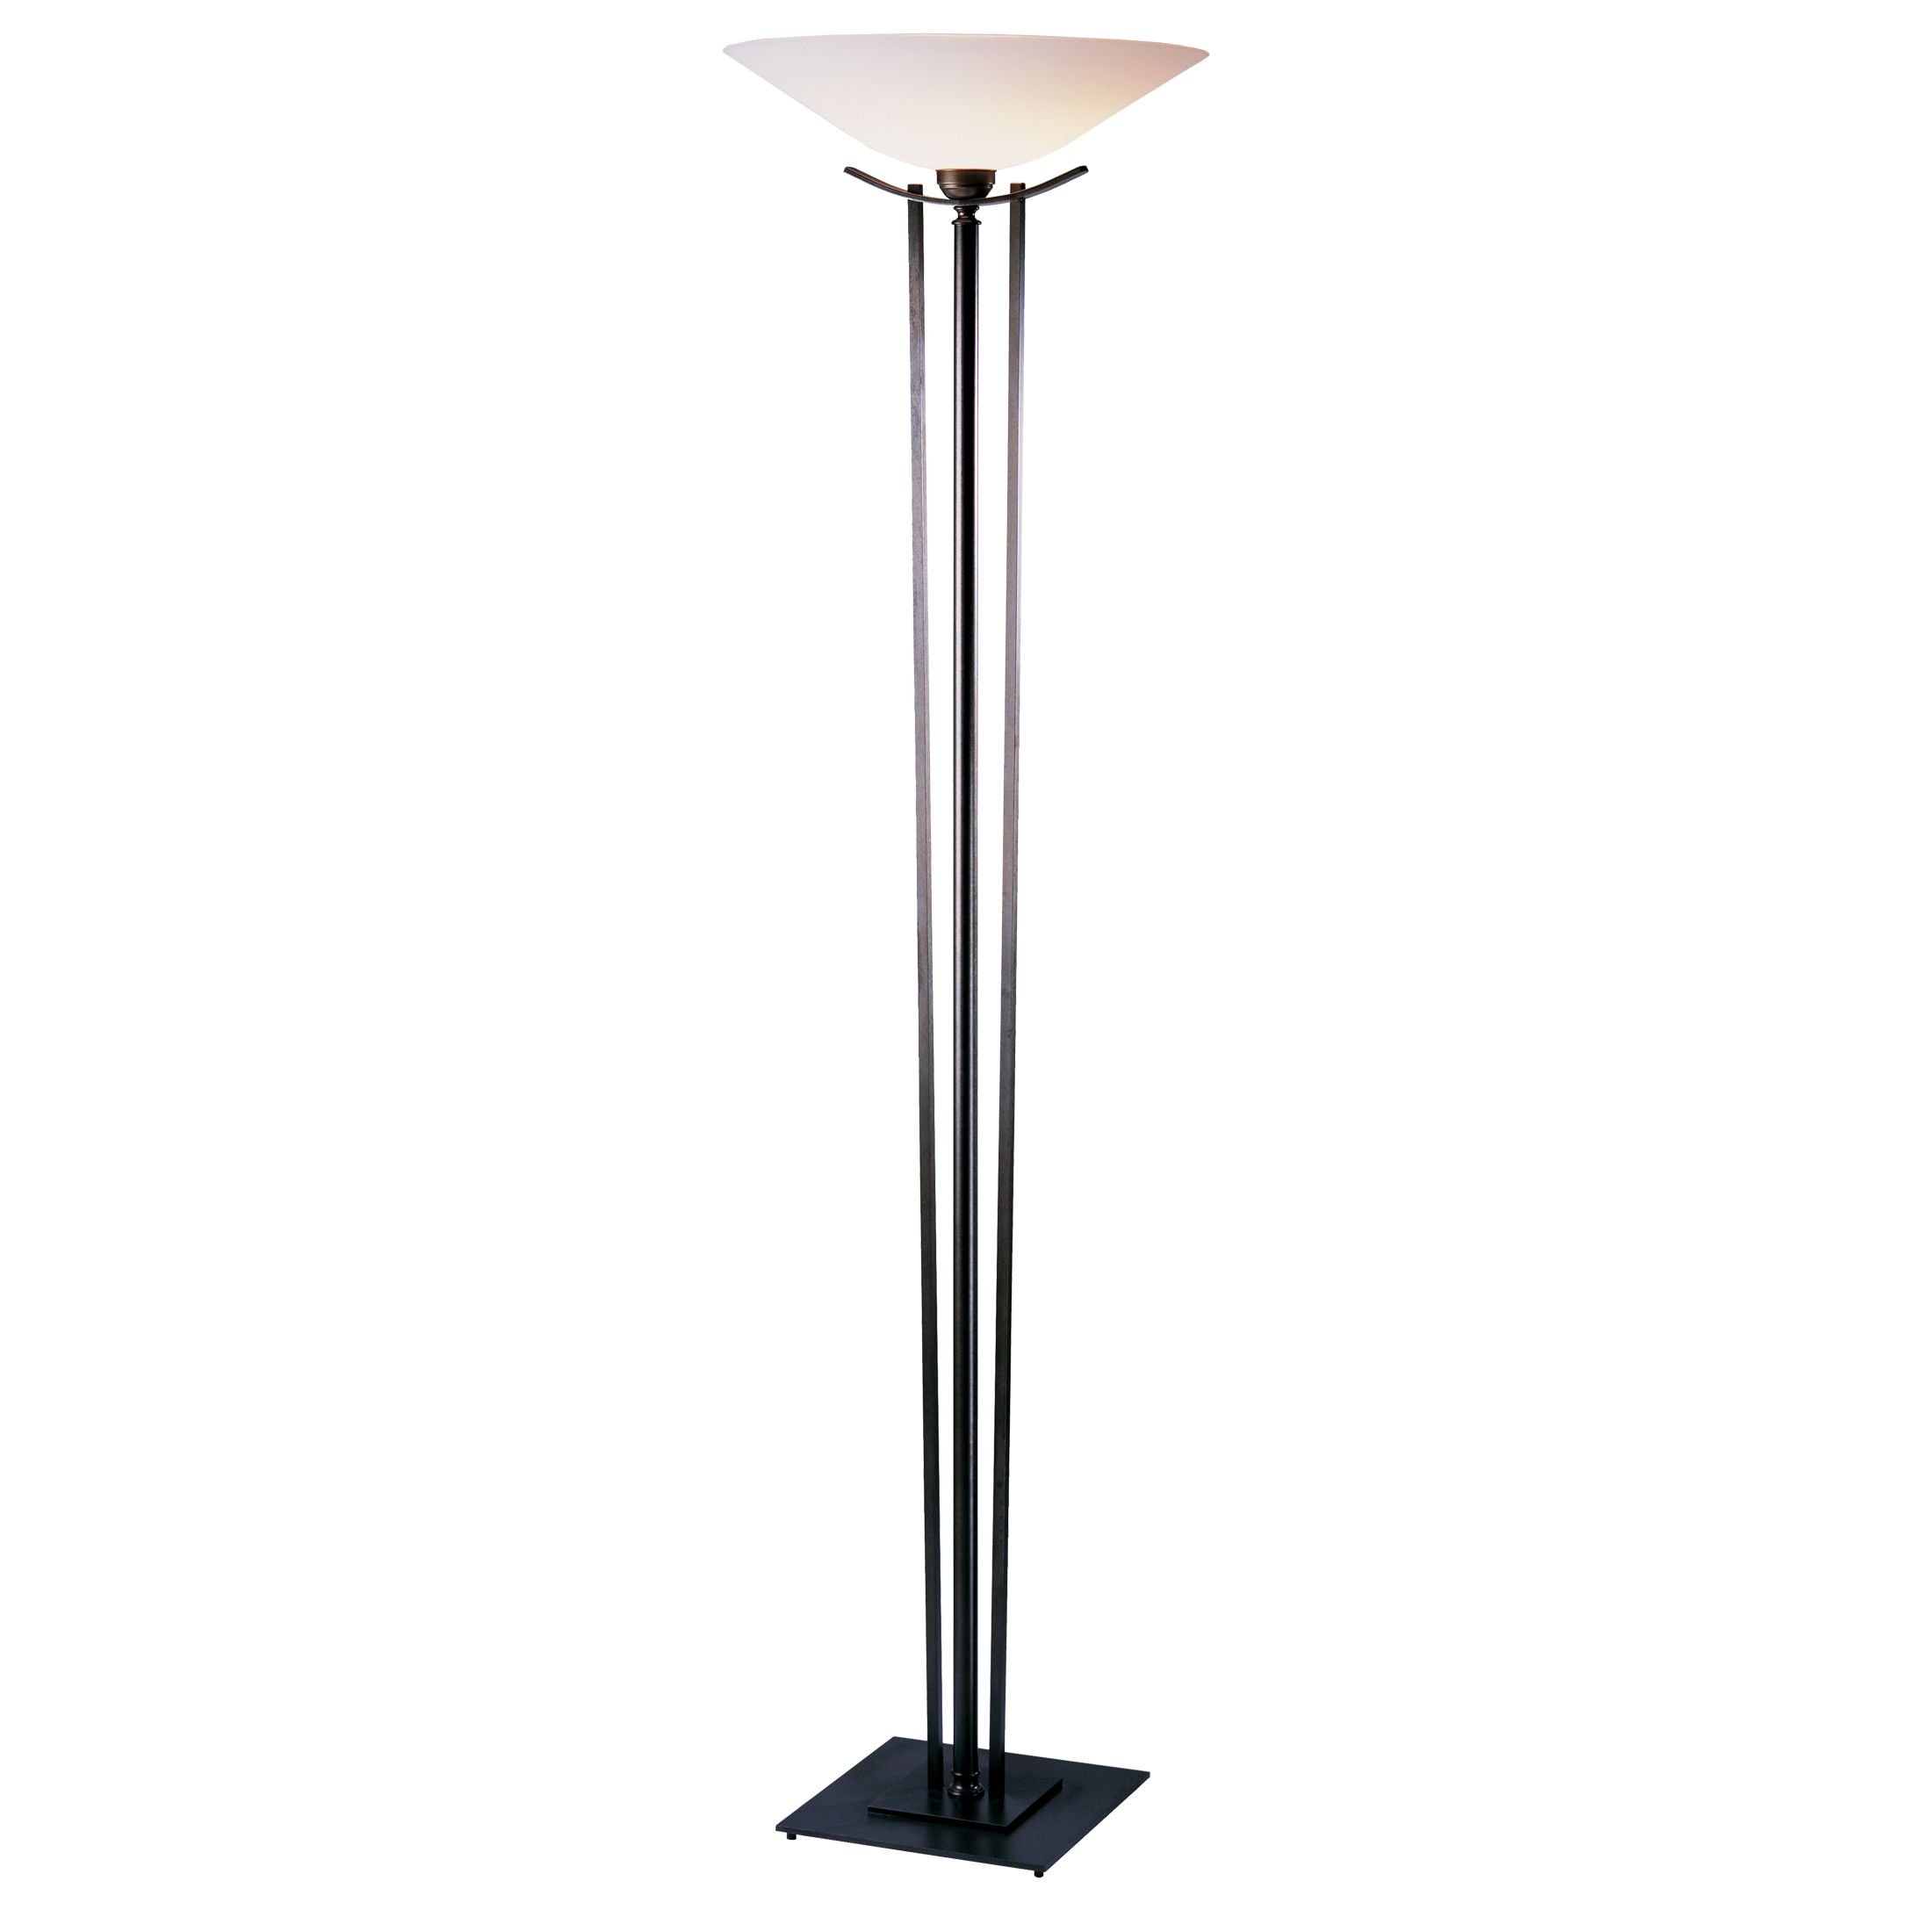 taper torchiere – hubbardton forge - product detail taper torchiere